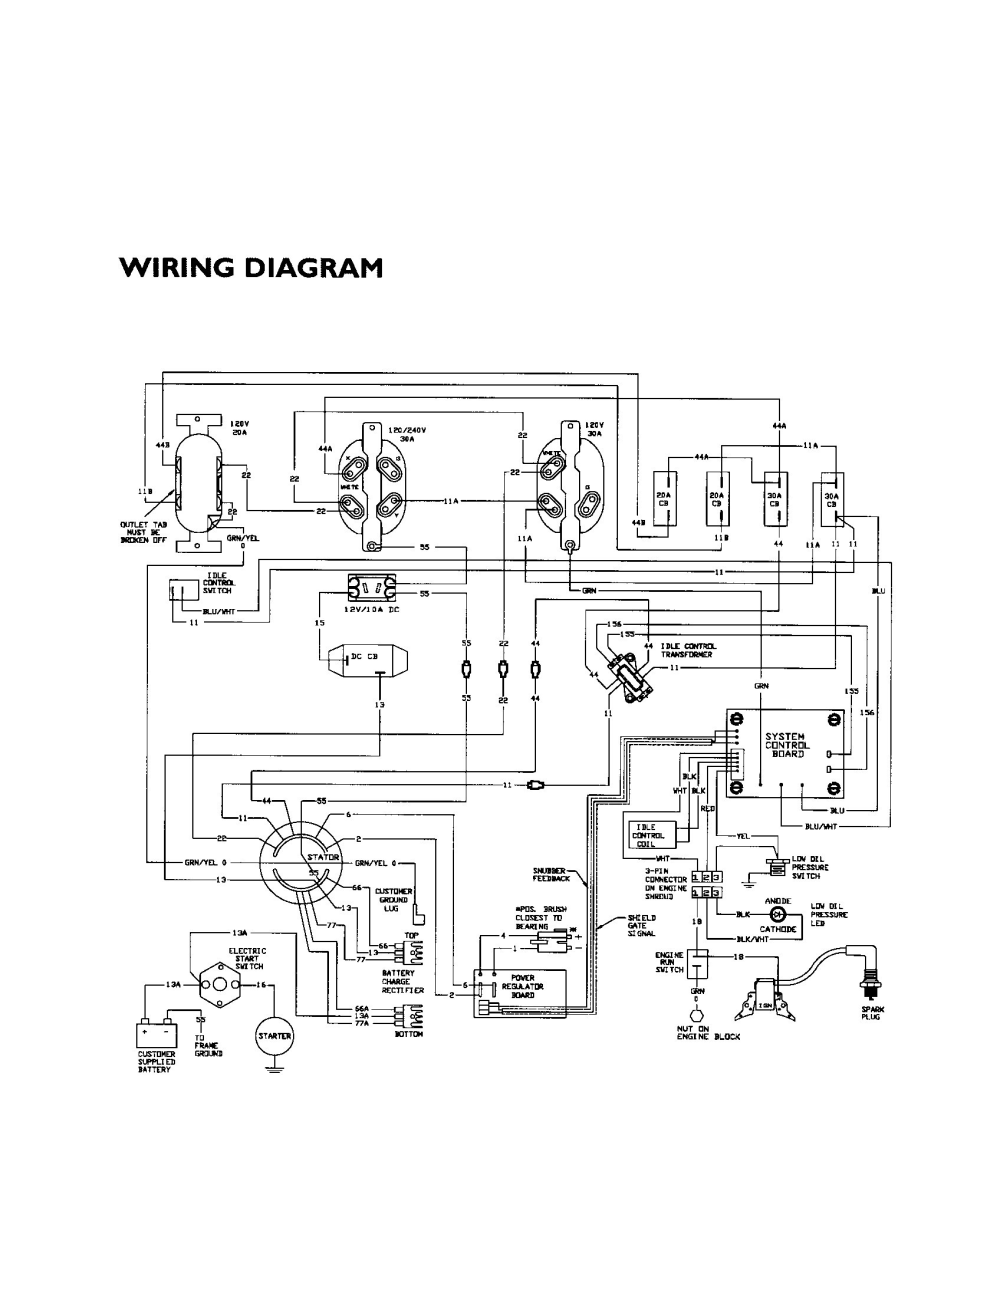 medium resolution of generac wiring schematic wiring diagram database generac 5000 watt generator wiring diagram